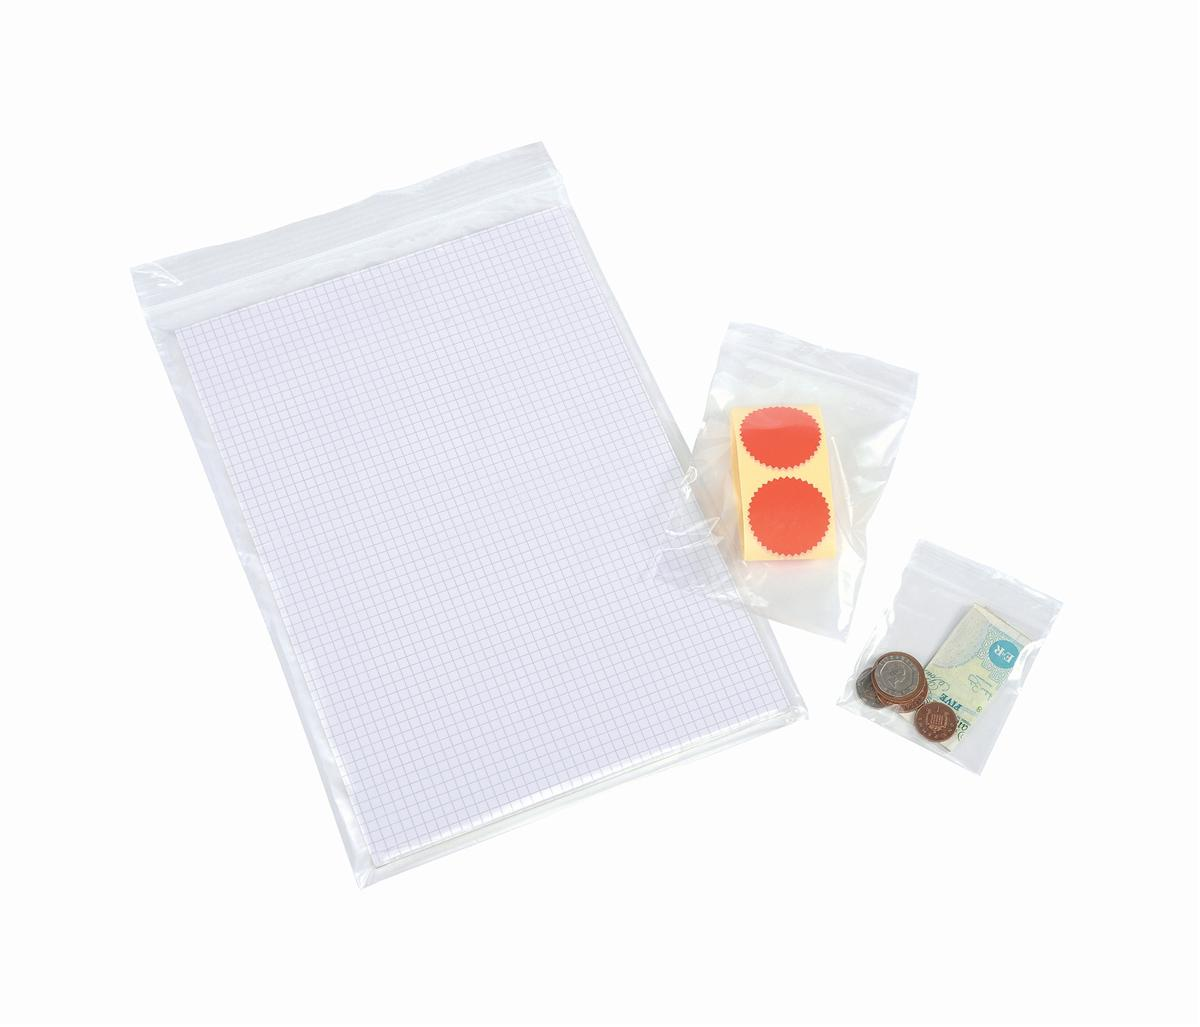 Polythene Bag Gripseal 57x57mm Standard Duty 40 Micron Clear [Pack 1000]